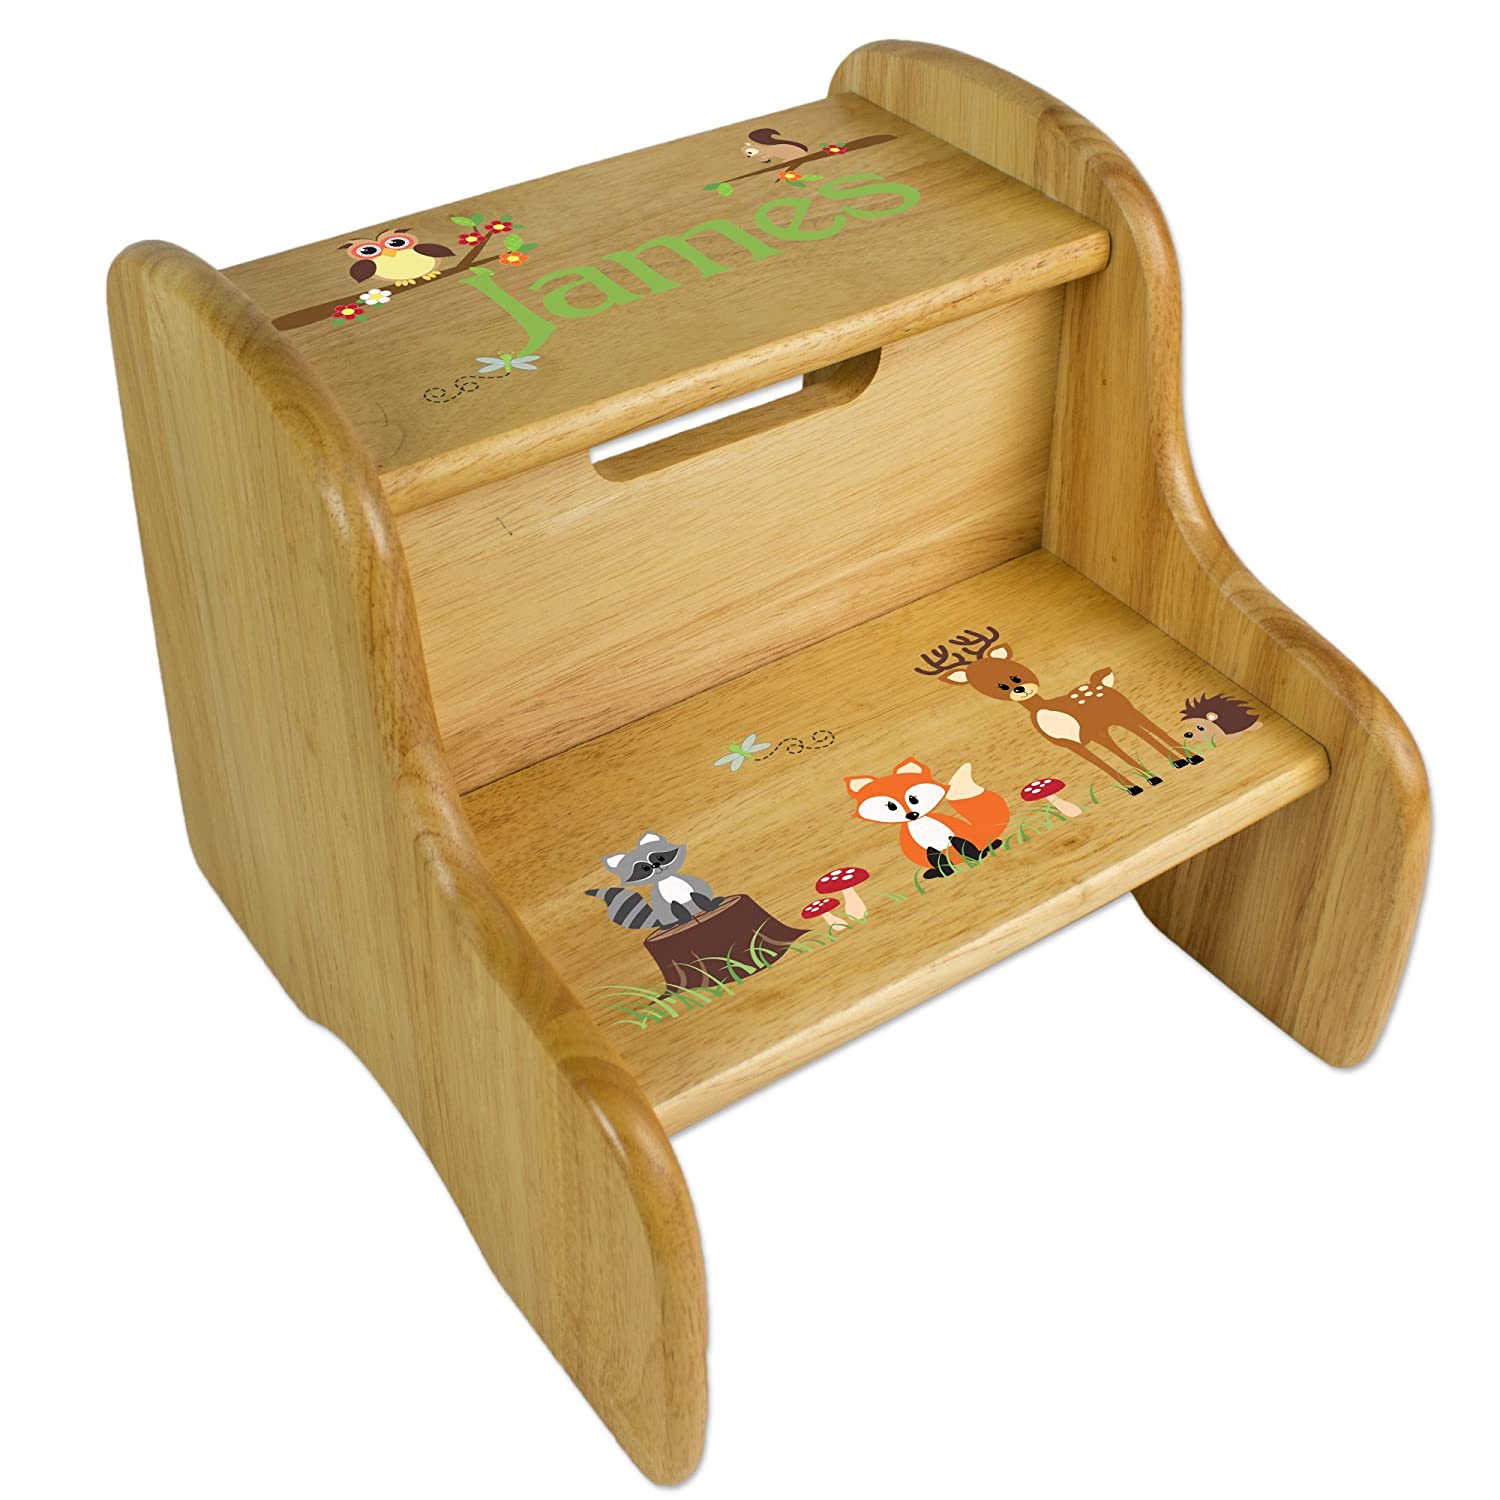 Personalized Wooden Woodland Animals Step Stool MyBambino FIXE-NAT-218-PT